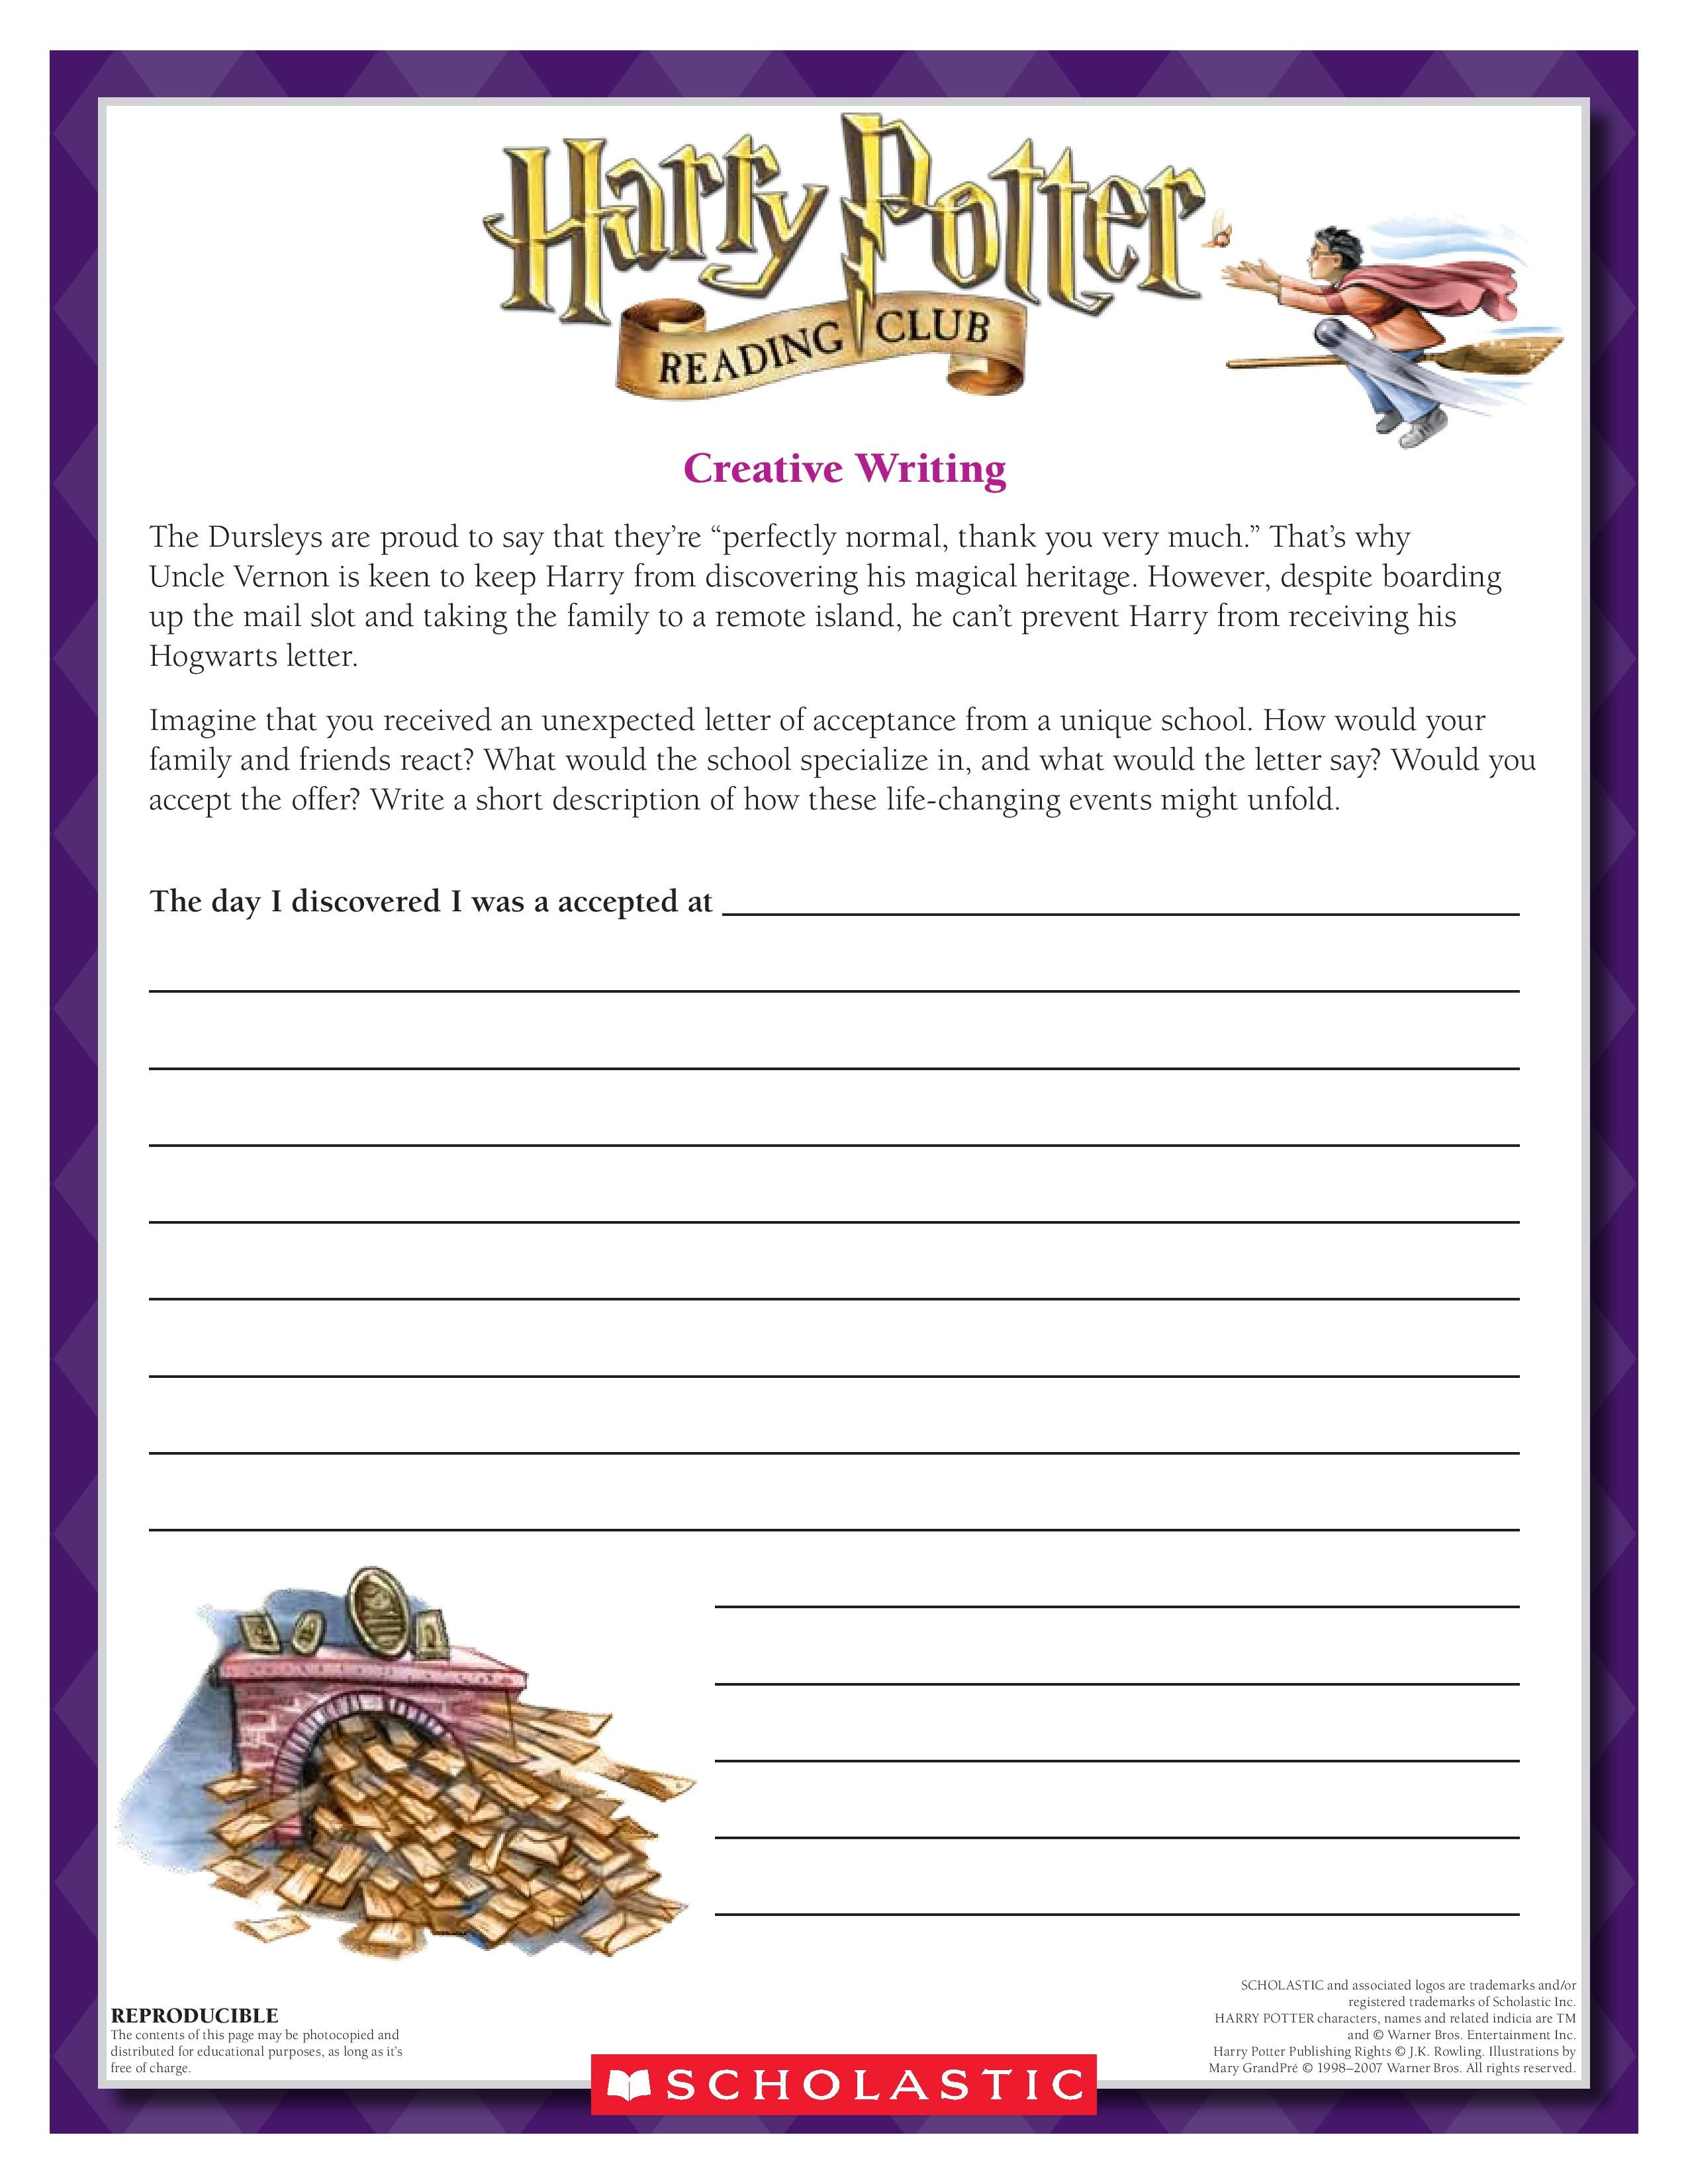 September Creative Writing Exercise Imagine You Have